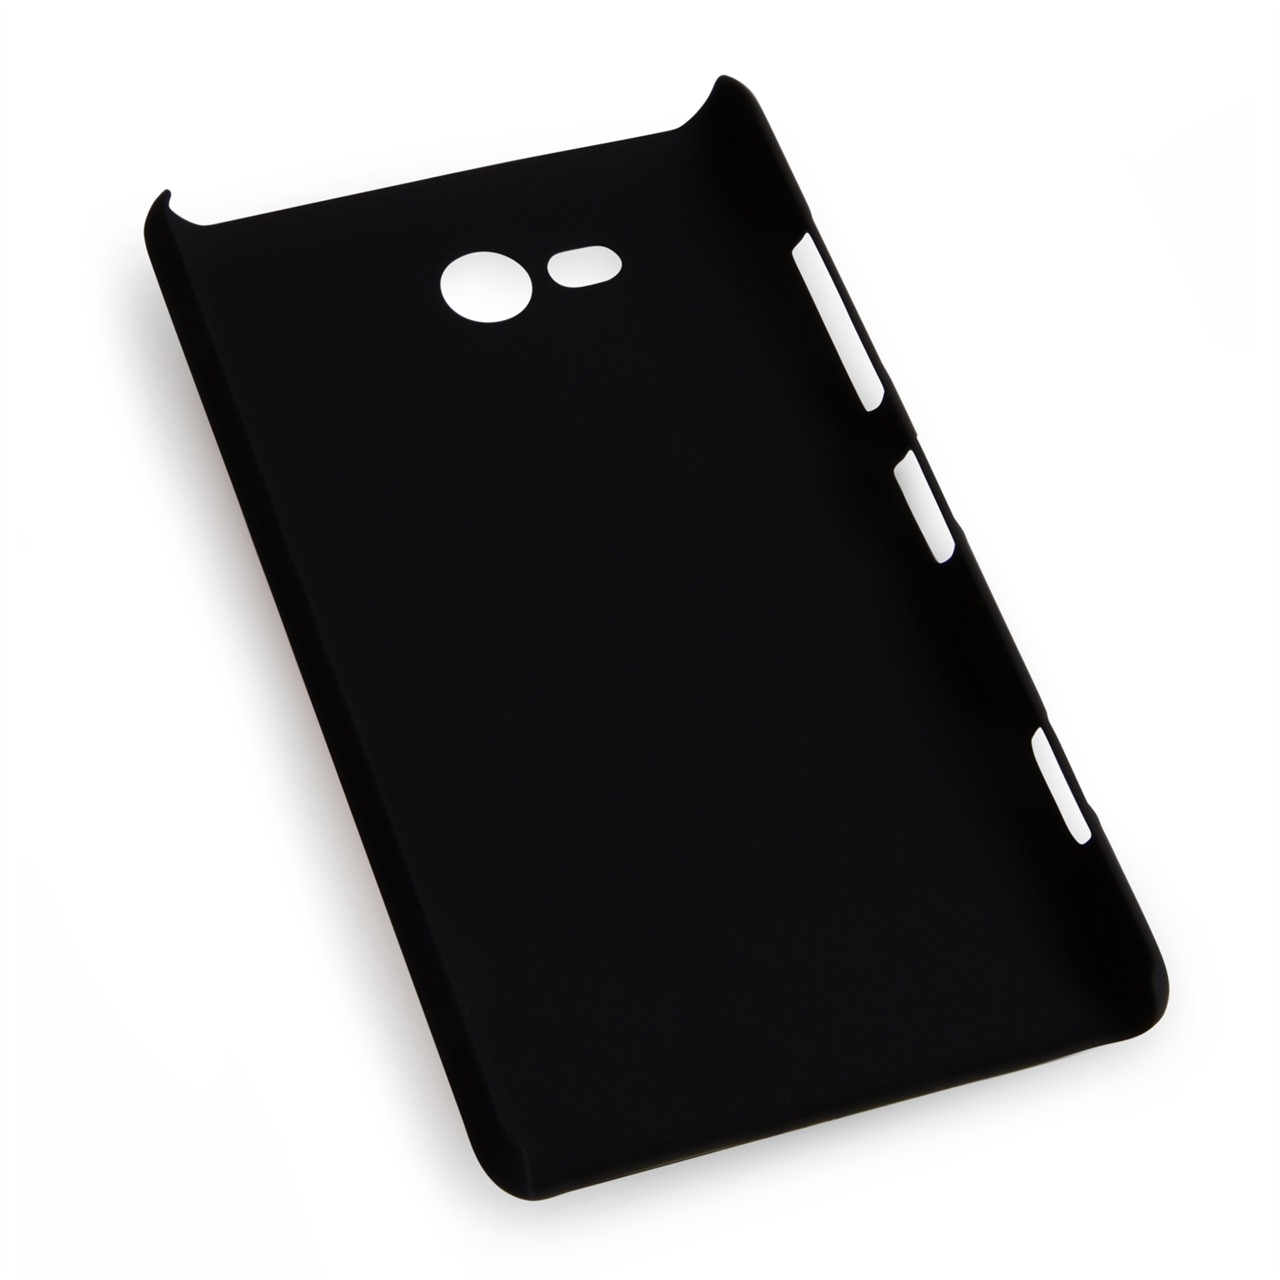 YouSave Accessories Nokia Lumia 820 Hybrid Hard Case - Black